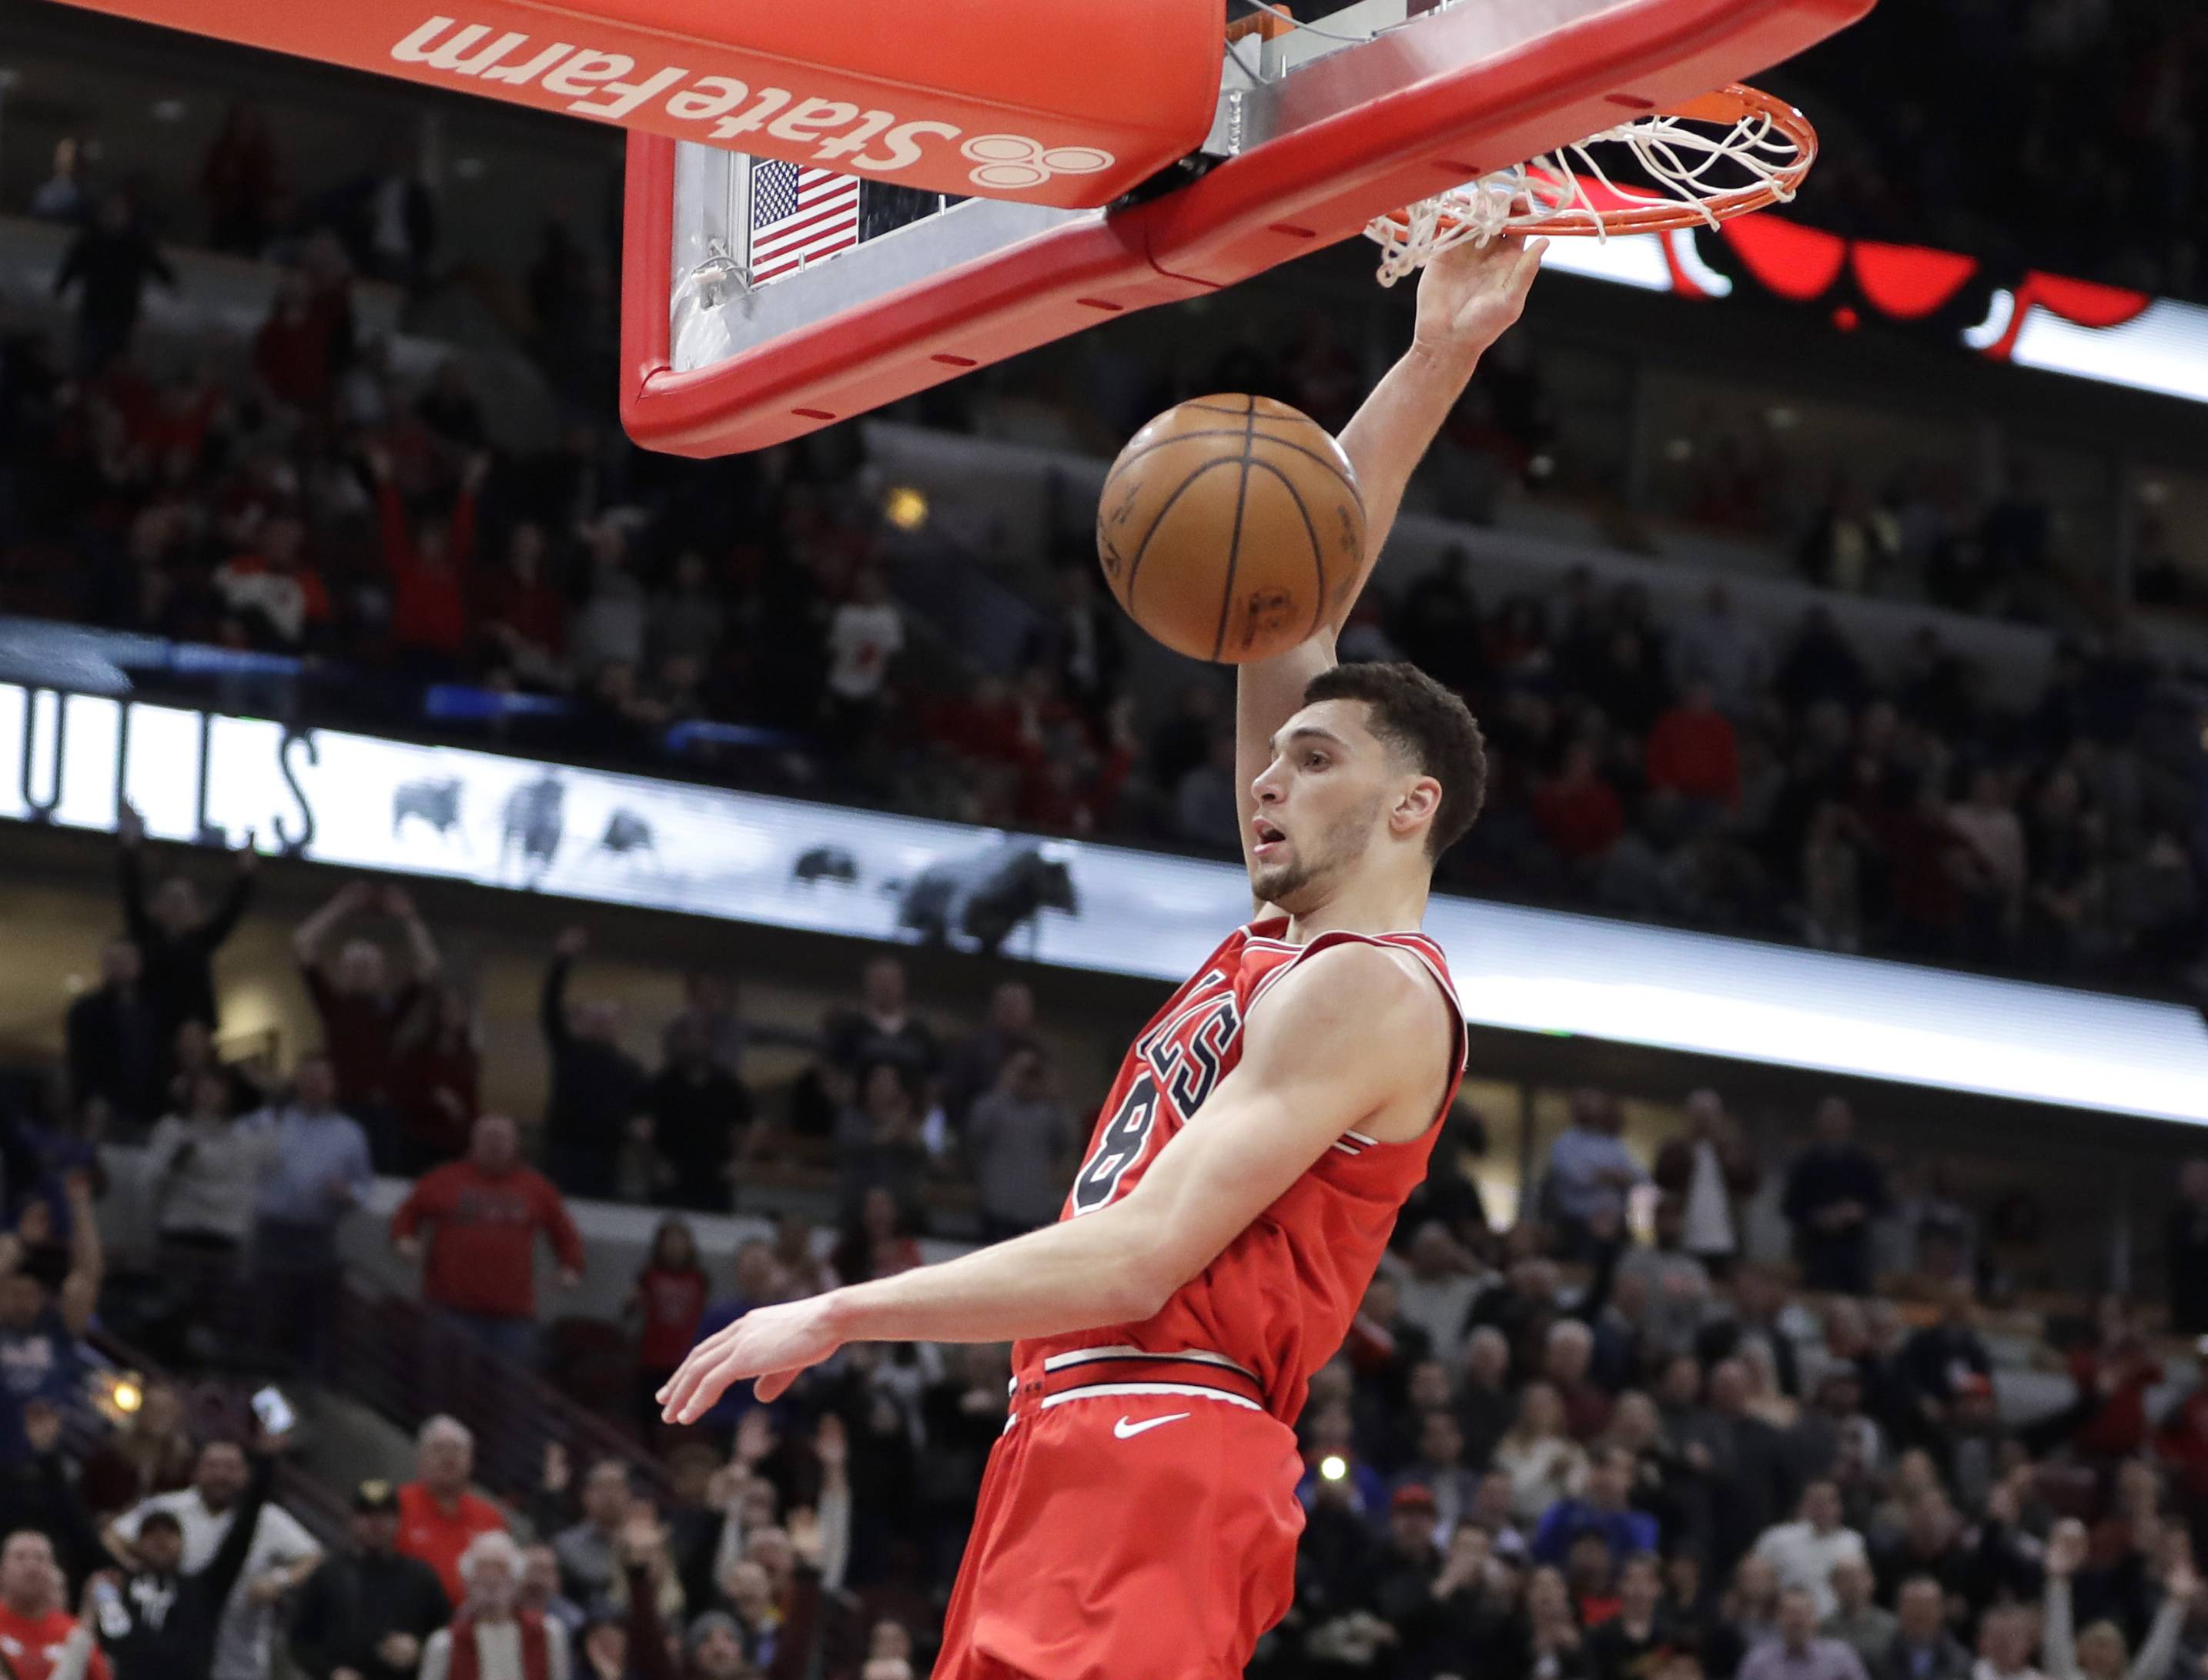 Bulls beat Magic in a tale of two dunks